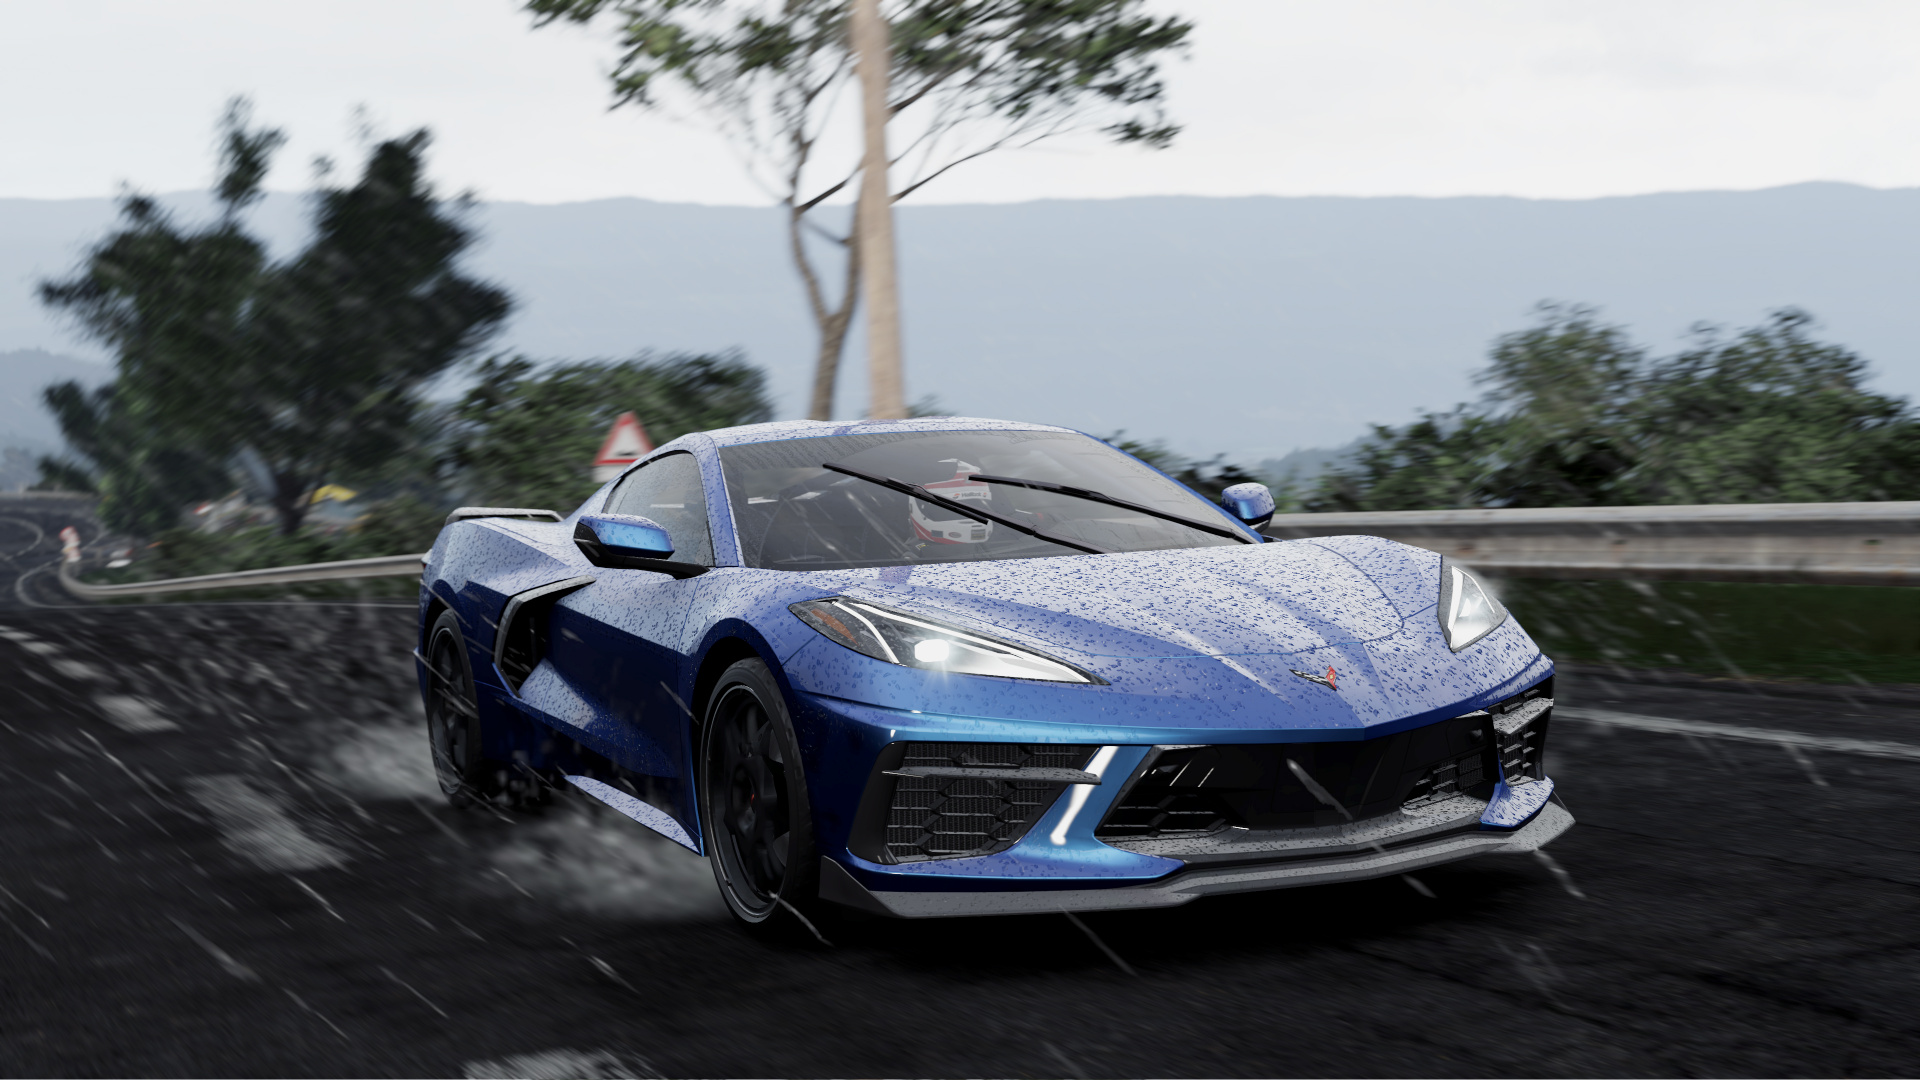 Project CARS 3 (PS4 / PlayStation 4) Game Profile   News